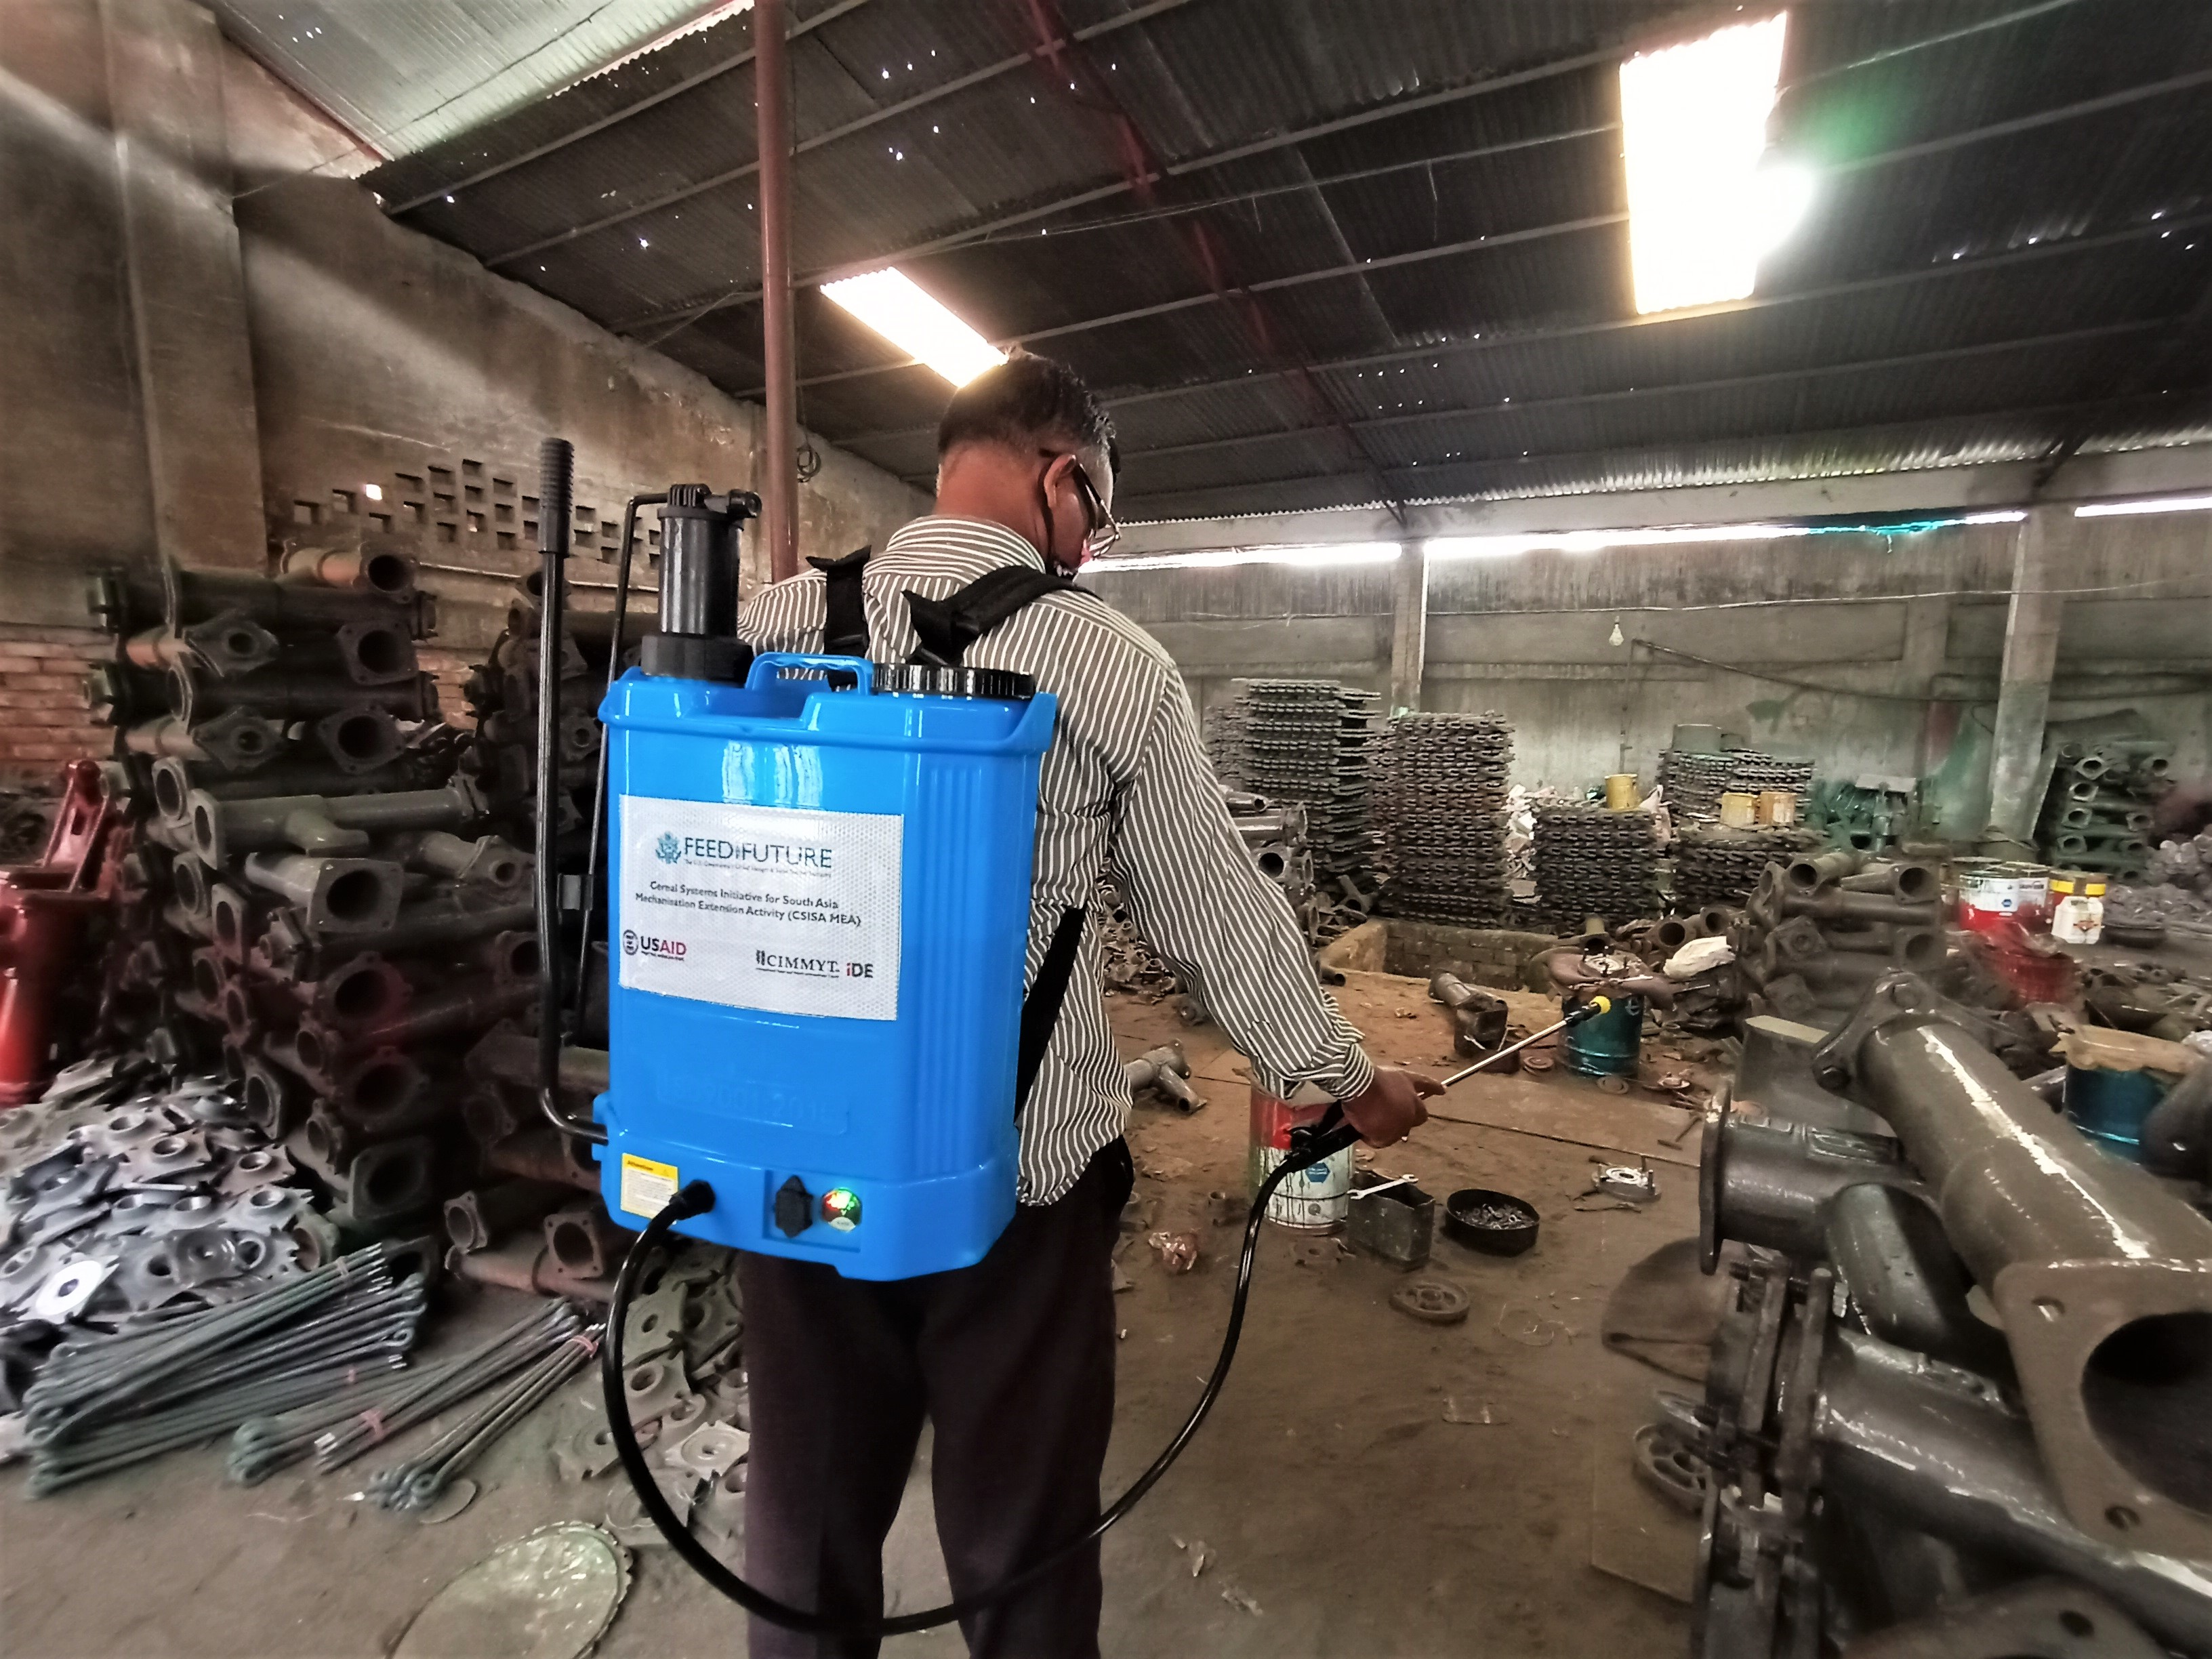 Man disinfects machines.